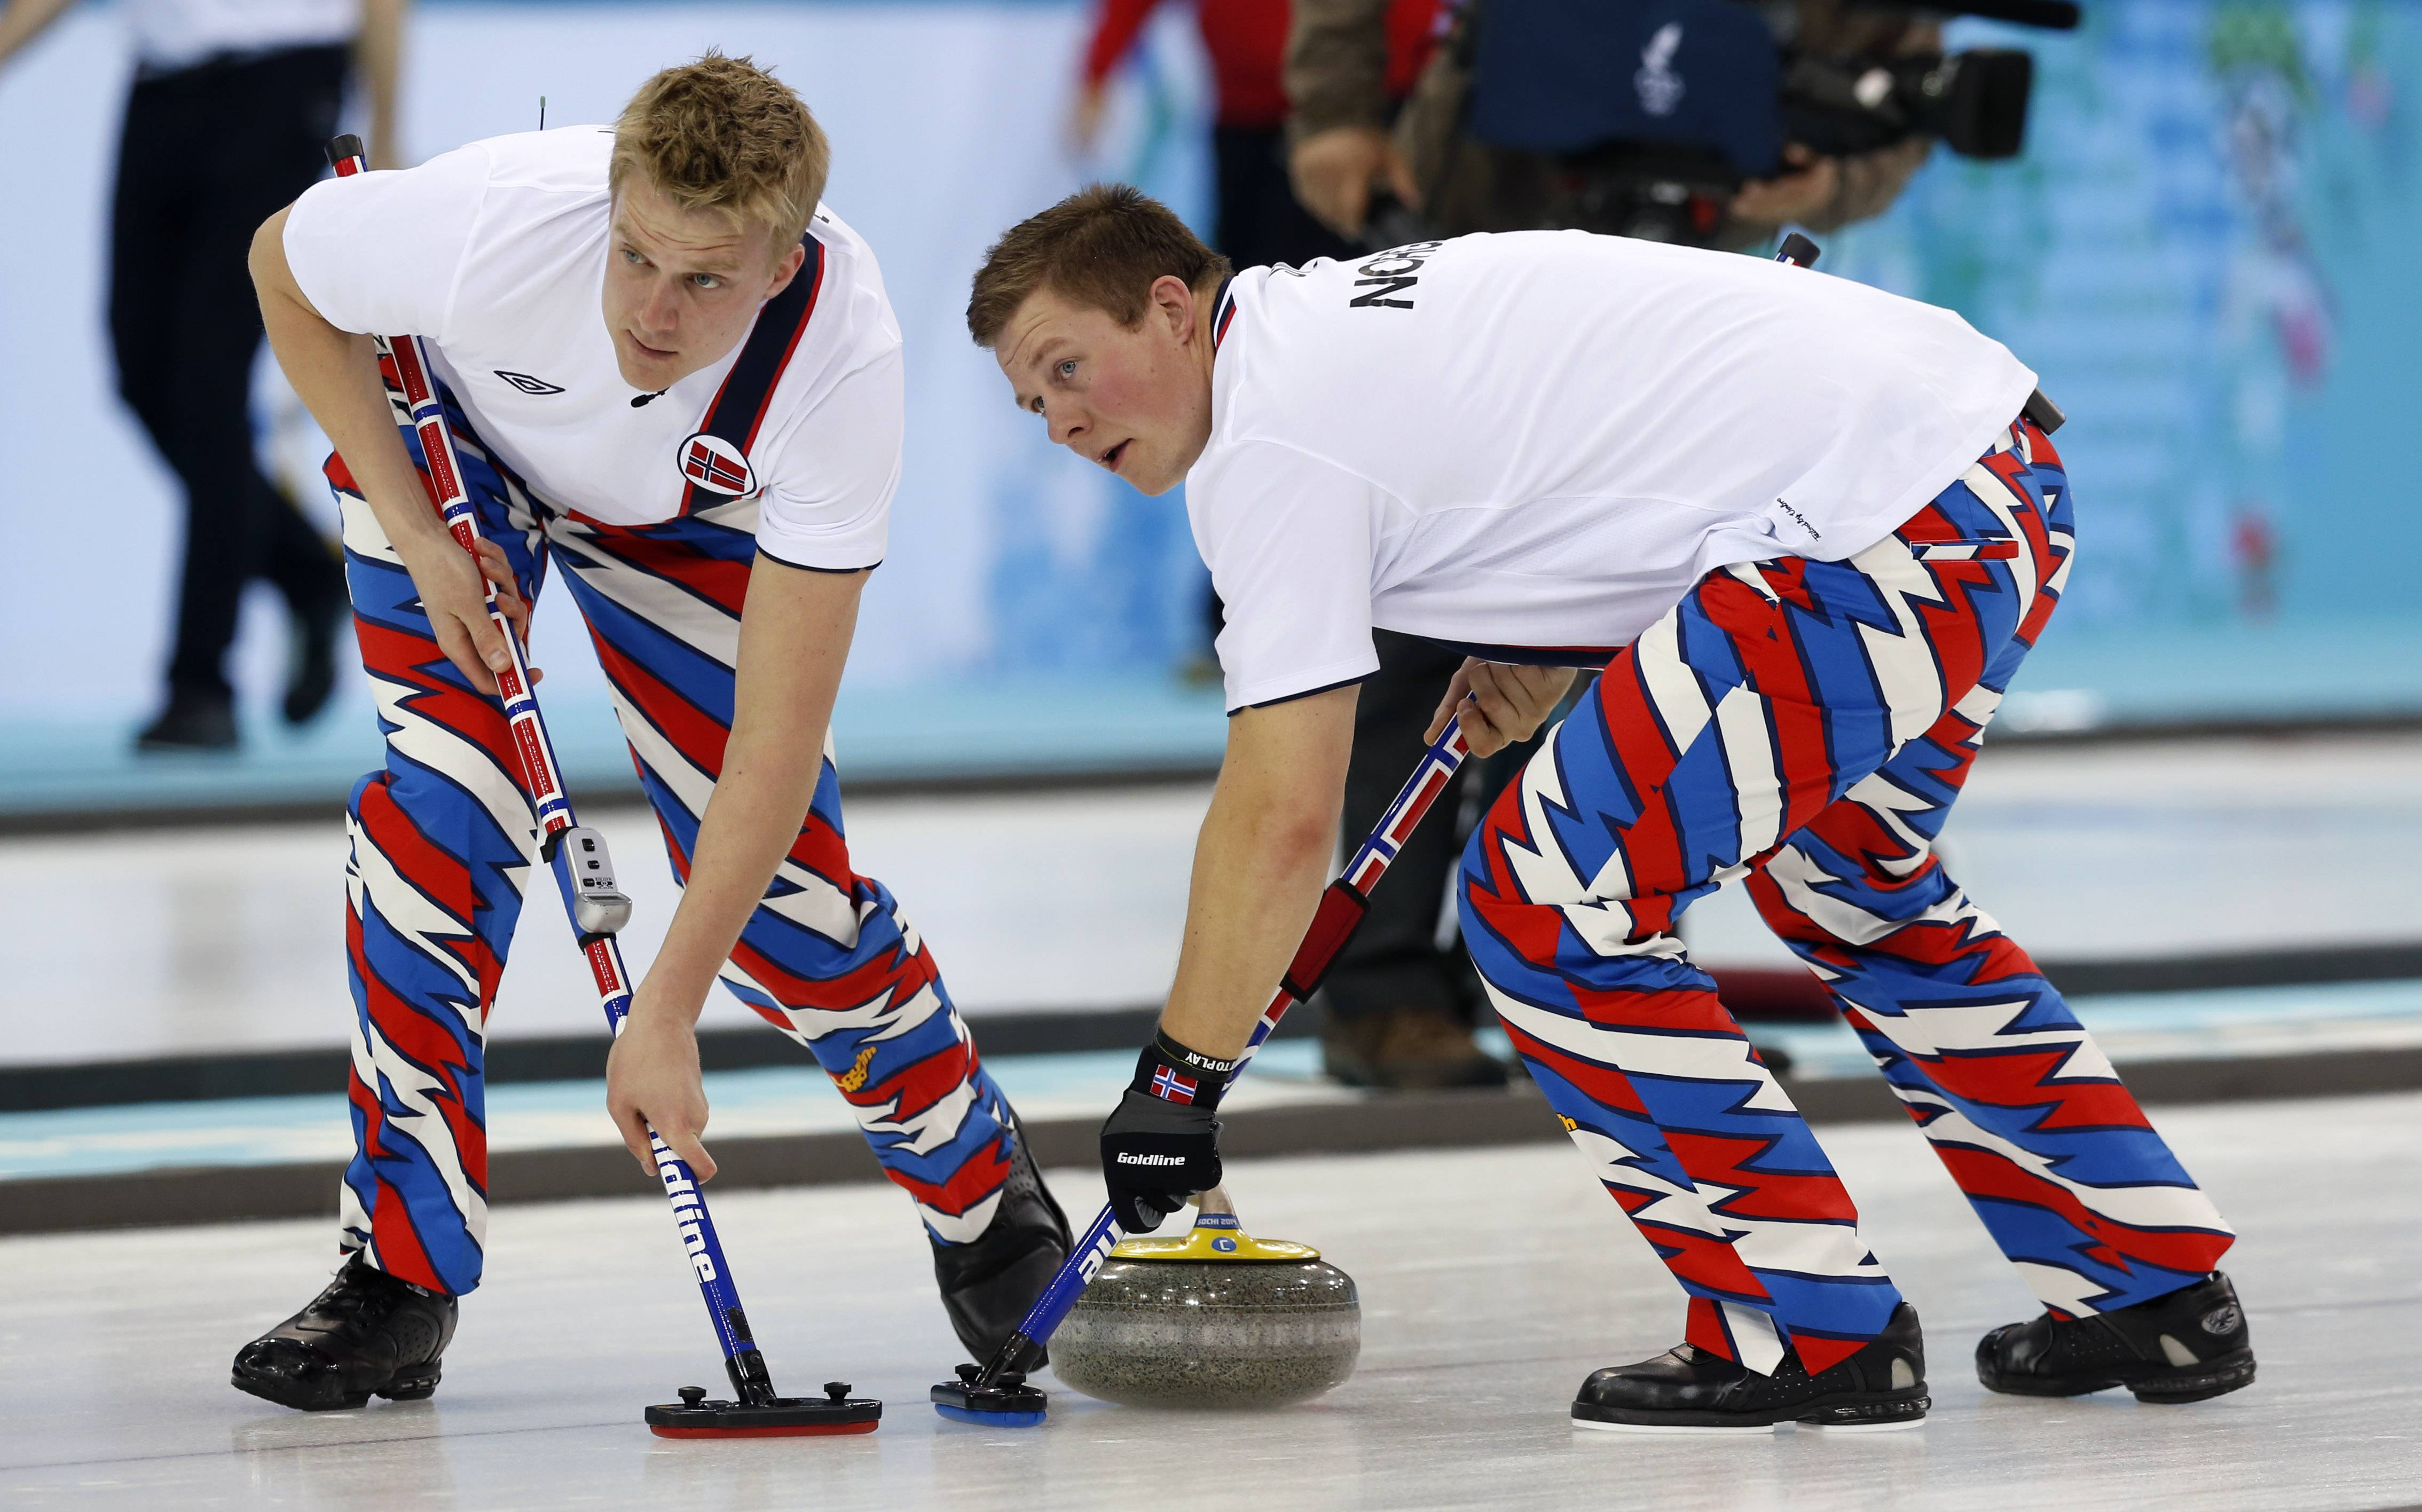 Haavard Vad Petersson, left, and Christoffer Svae sweep ahead of the stone during men's curling competition against China.